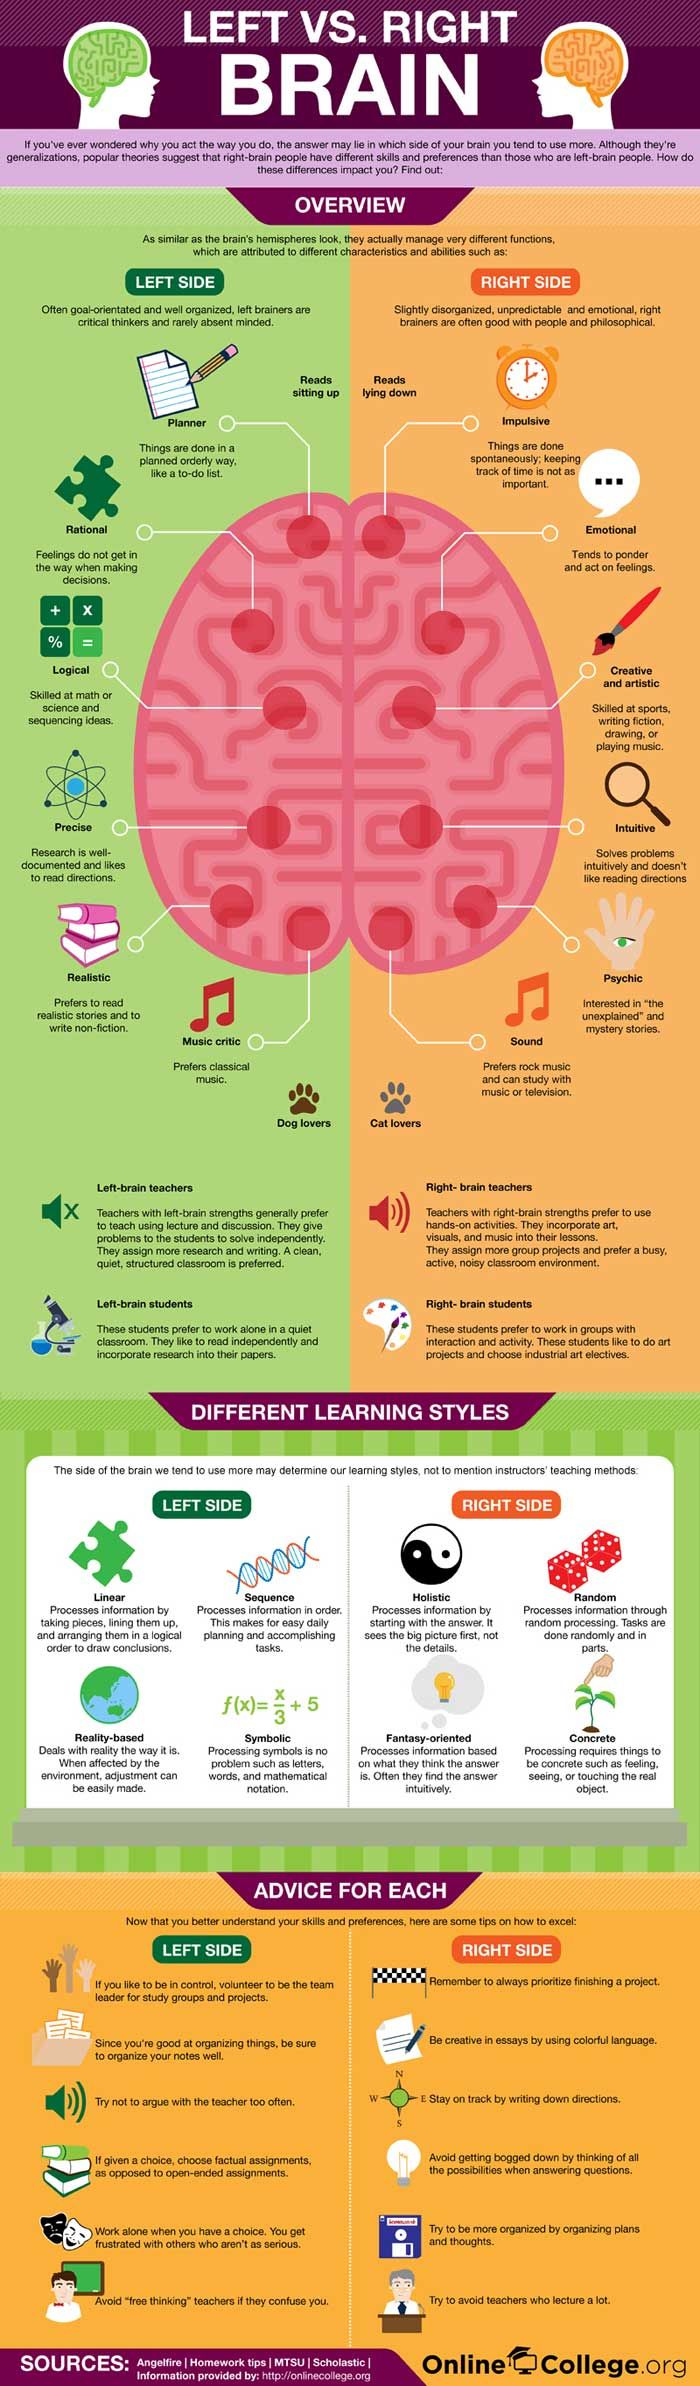 Right Brain vs. Left Brain  Though some aspects of brain function do tend to occur mainly in either the left or right side of our brains, the distinction between the two sides has been somewhat exaggerated. Still, the left brain-right brain theory is fun to think about in terms of preferences and how we learn.